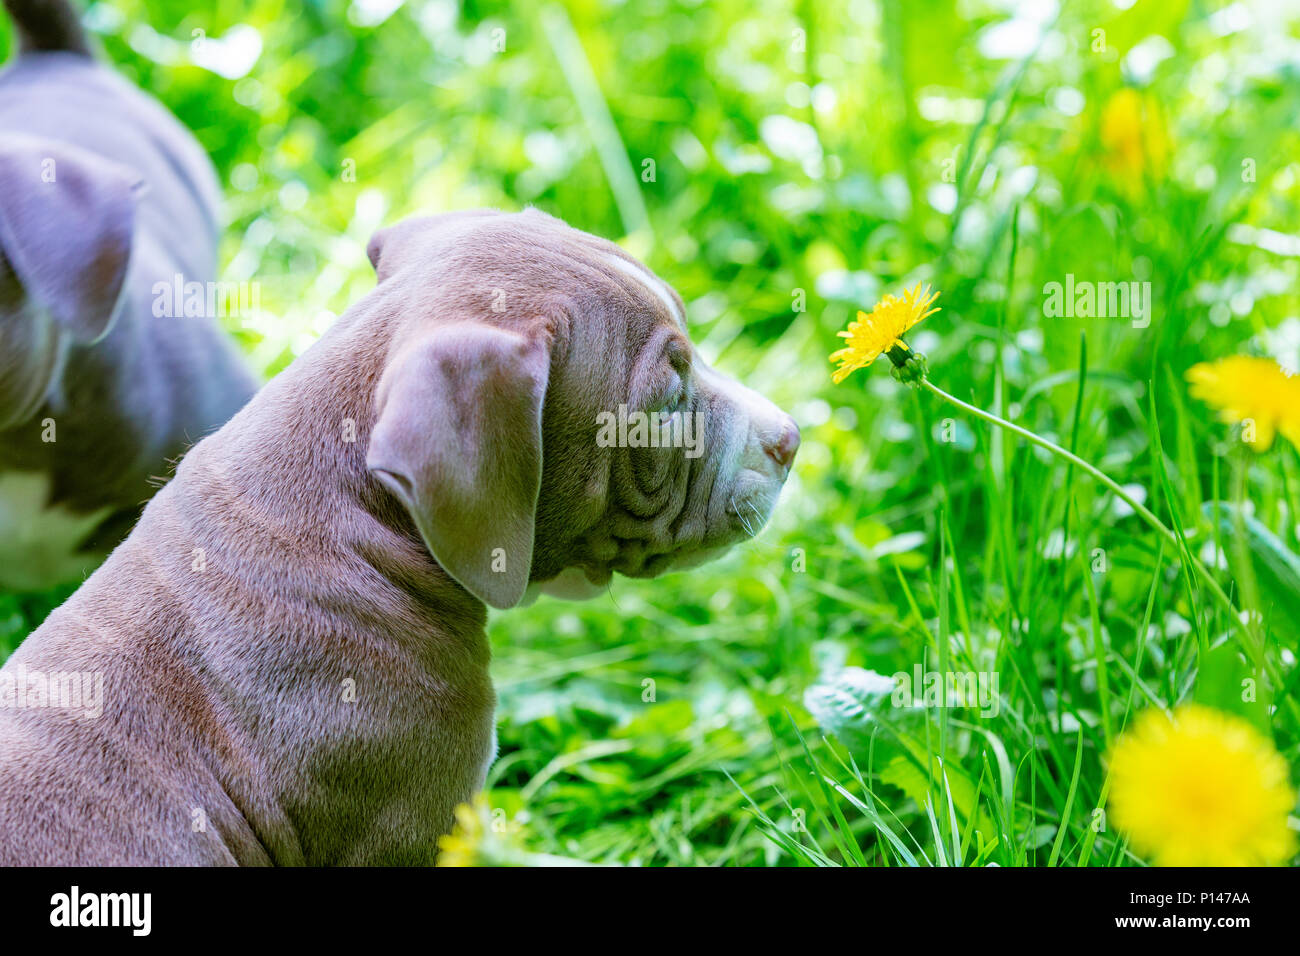 Cute Little Dogs Sitting Among Yellow Flowers In Green Grass In The